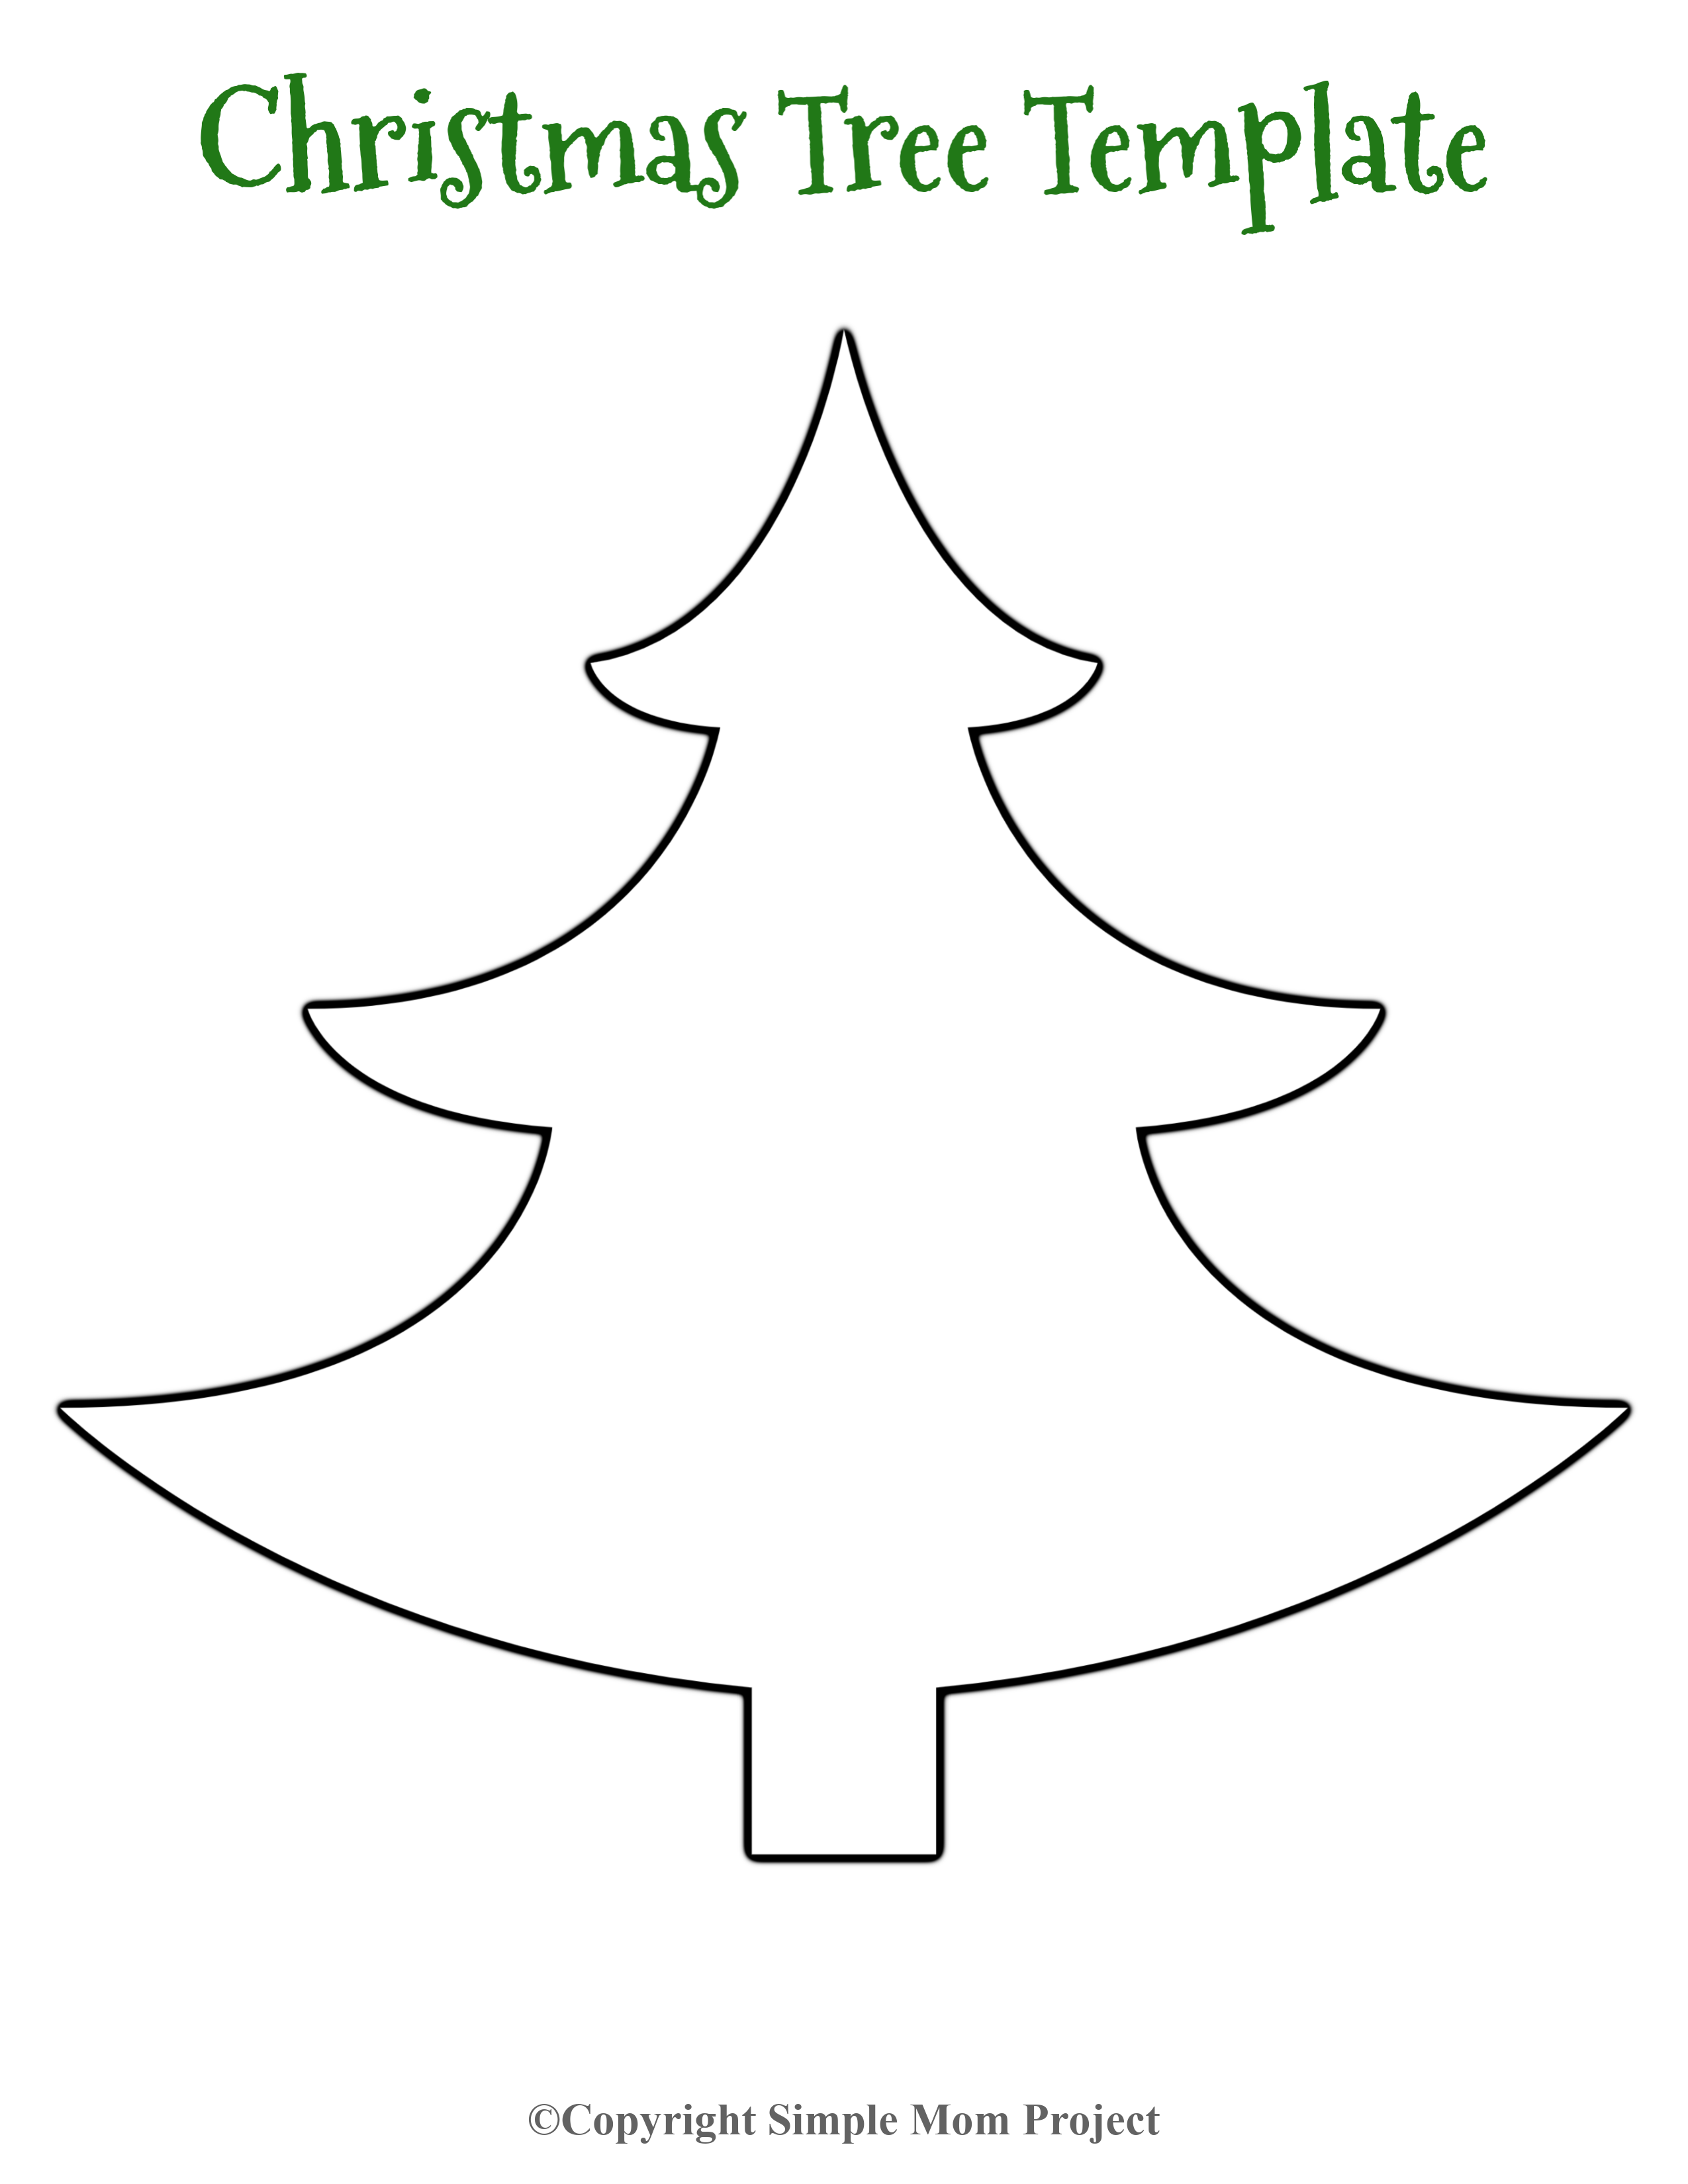 Free Printable Small Snowflake Templates Christmas Tree Template Tree Templates Christmas Tree Outline